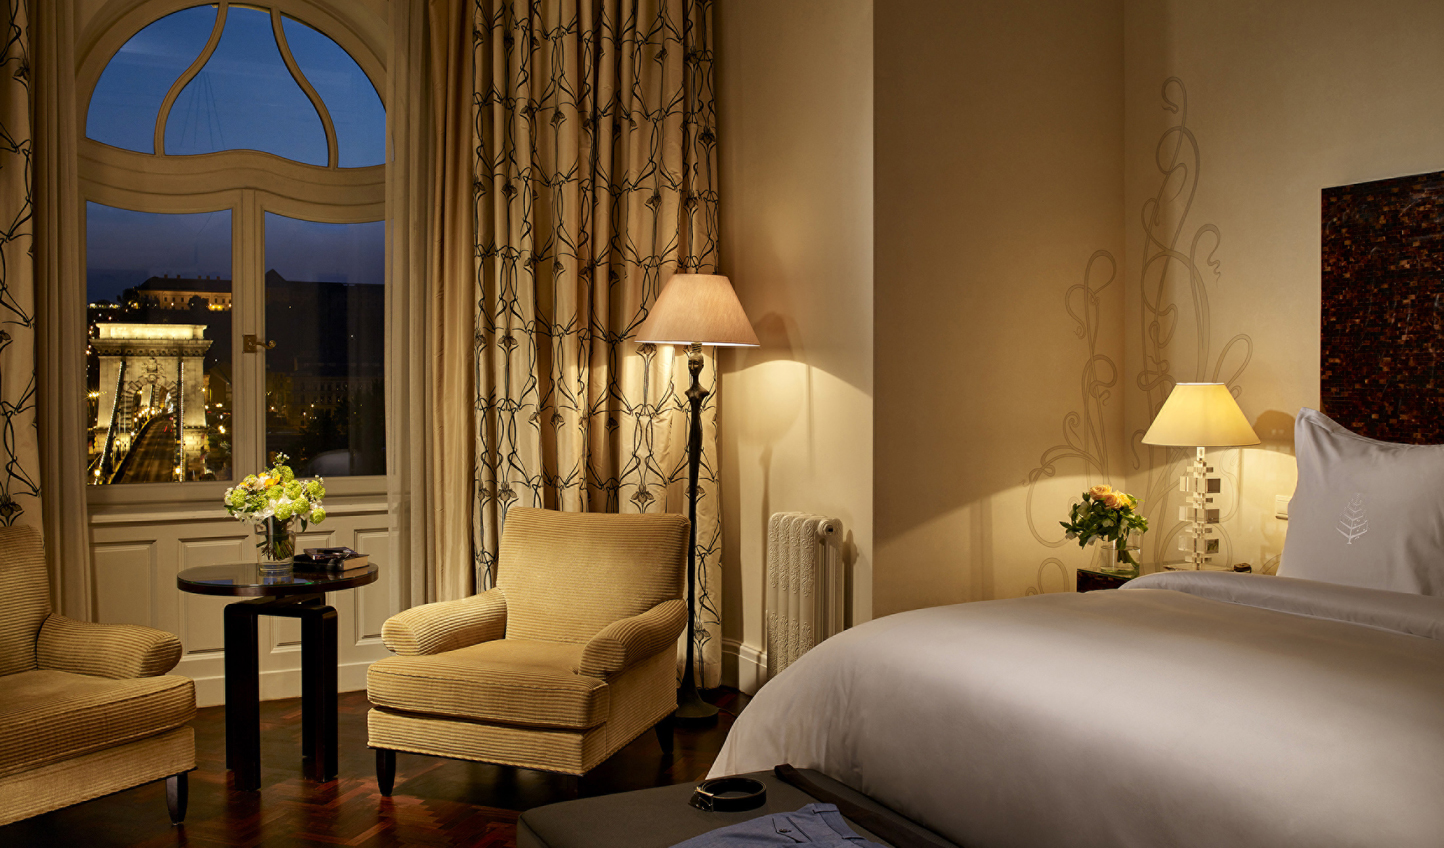 Admire the city lights from the comfort of your suite